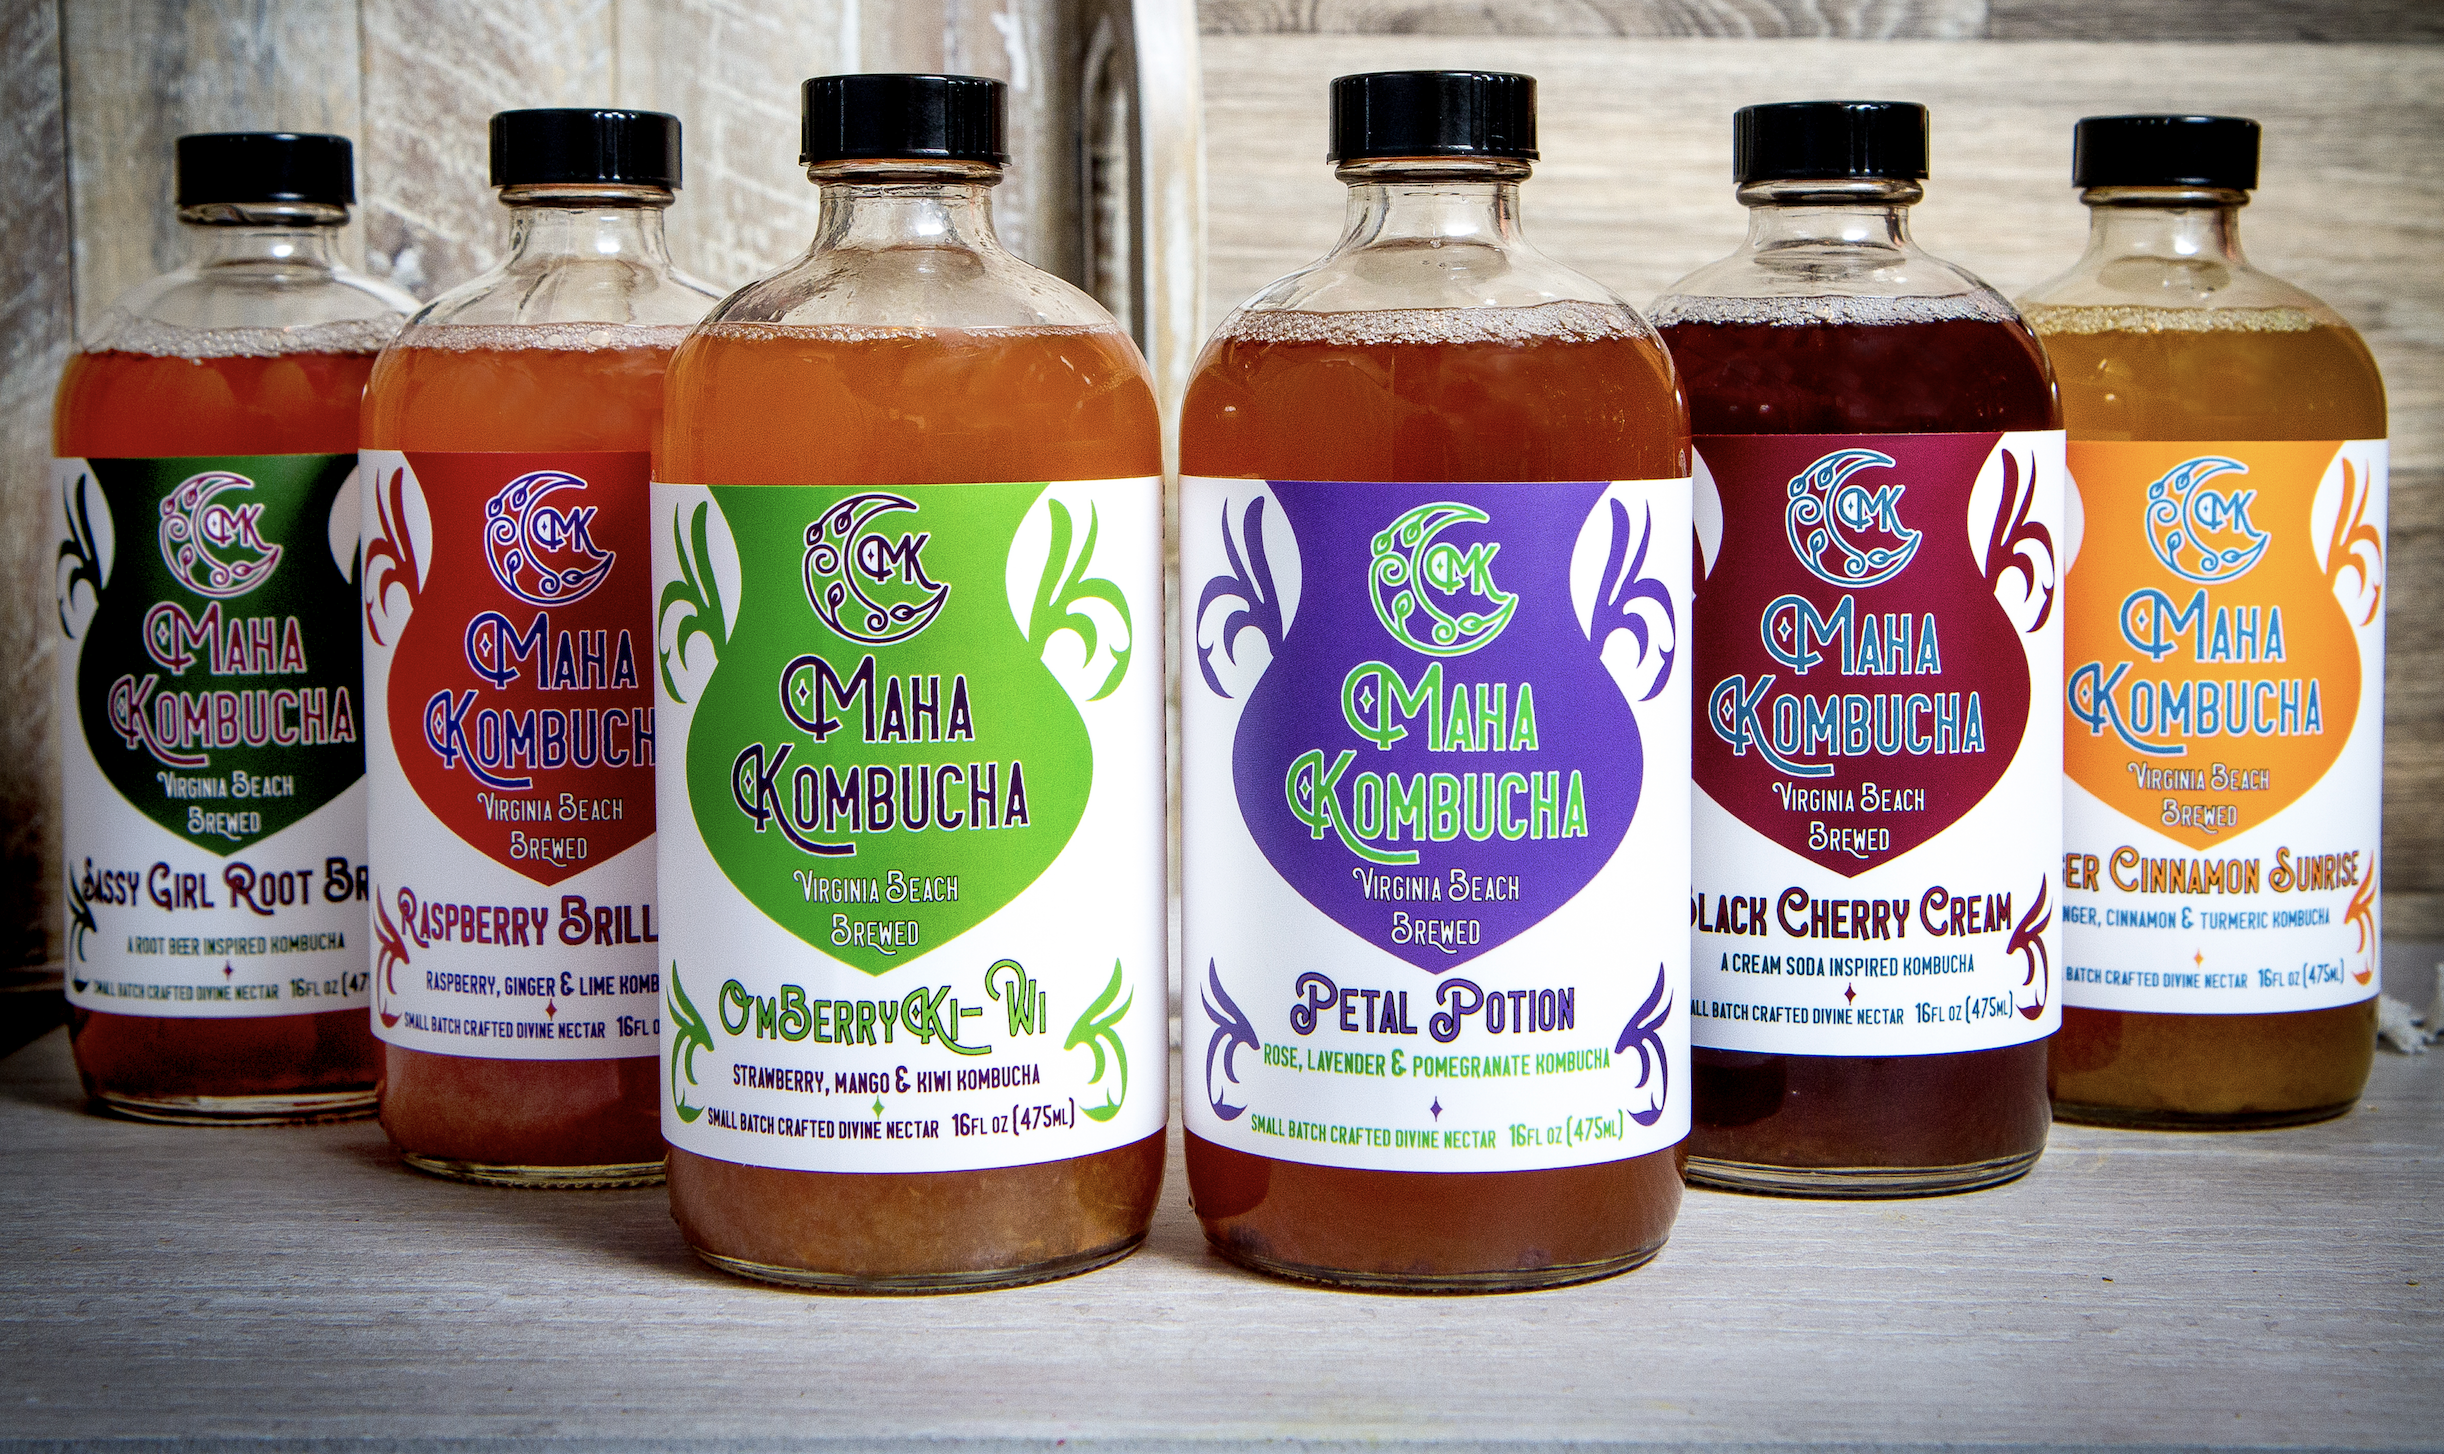 MAHA KOMBUCHA   Hi! Welcome to Maha Kombucha Co. We are a small business created and run right here in Virginia Beach by Mahadeva and Hari Dasi. We are founded under the philosophy of consciousness towards ourselves and our community. We strive to produce a beneficial local product while minimizing the environmental impact of production. We are proud to use only organic or wildcrafted ingredients, fair trade whenever possible, aiming for a zero-waste policy in our business and personal lives. We are yoga teachers, artists, linguists, creators and chefs hoping to share our spirit for life with you through Maha Kombucha and yoga. Please come meet us at the farmers' markets, join us for a yoga class or send us a message. We look forward to meeting you.